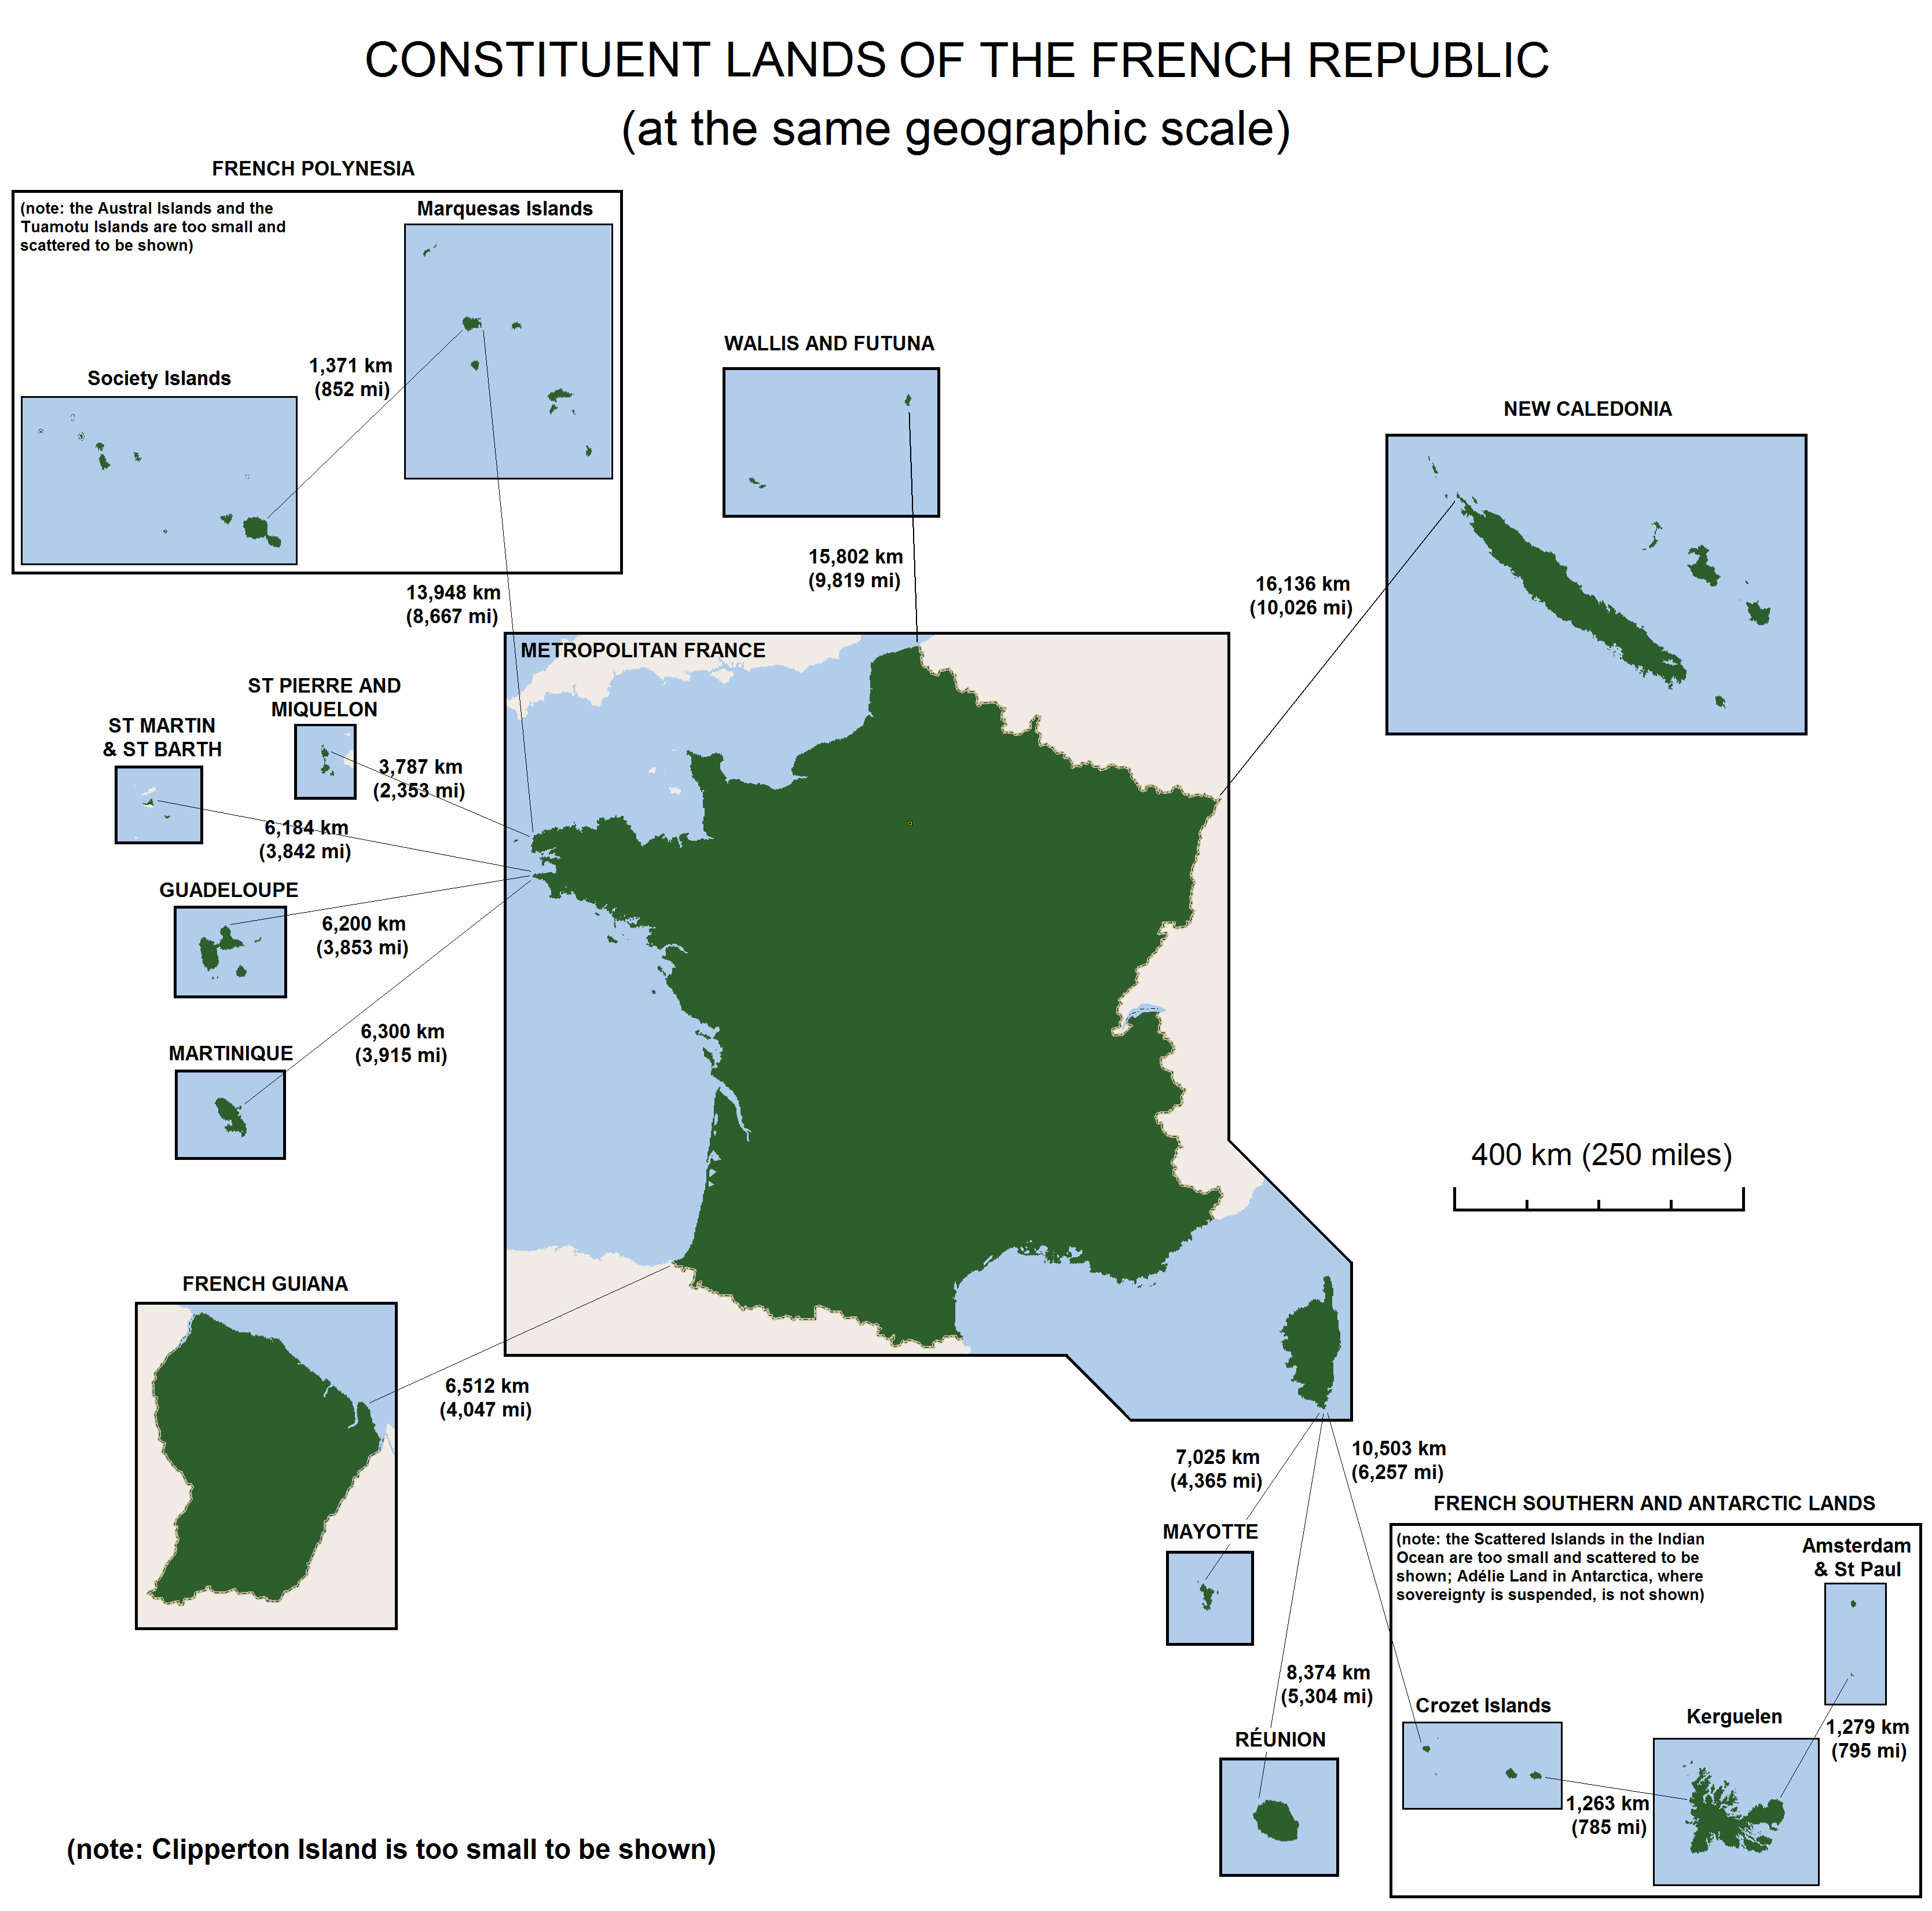 http://upload.wikimedia.org/wikipedia/commons/9/91/France-Constituent-Lands.png